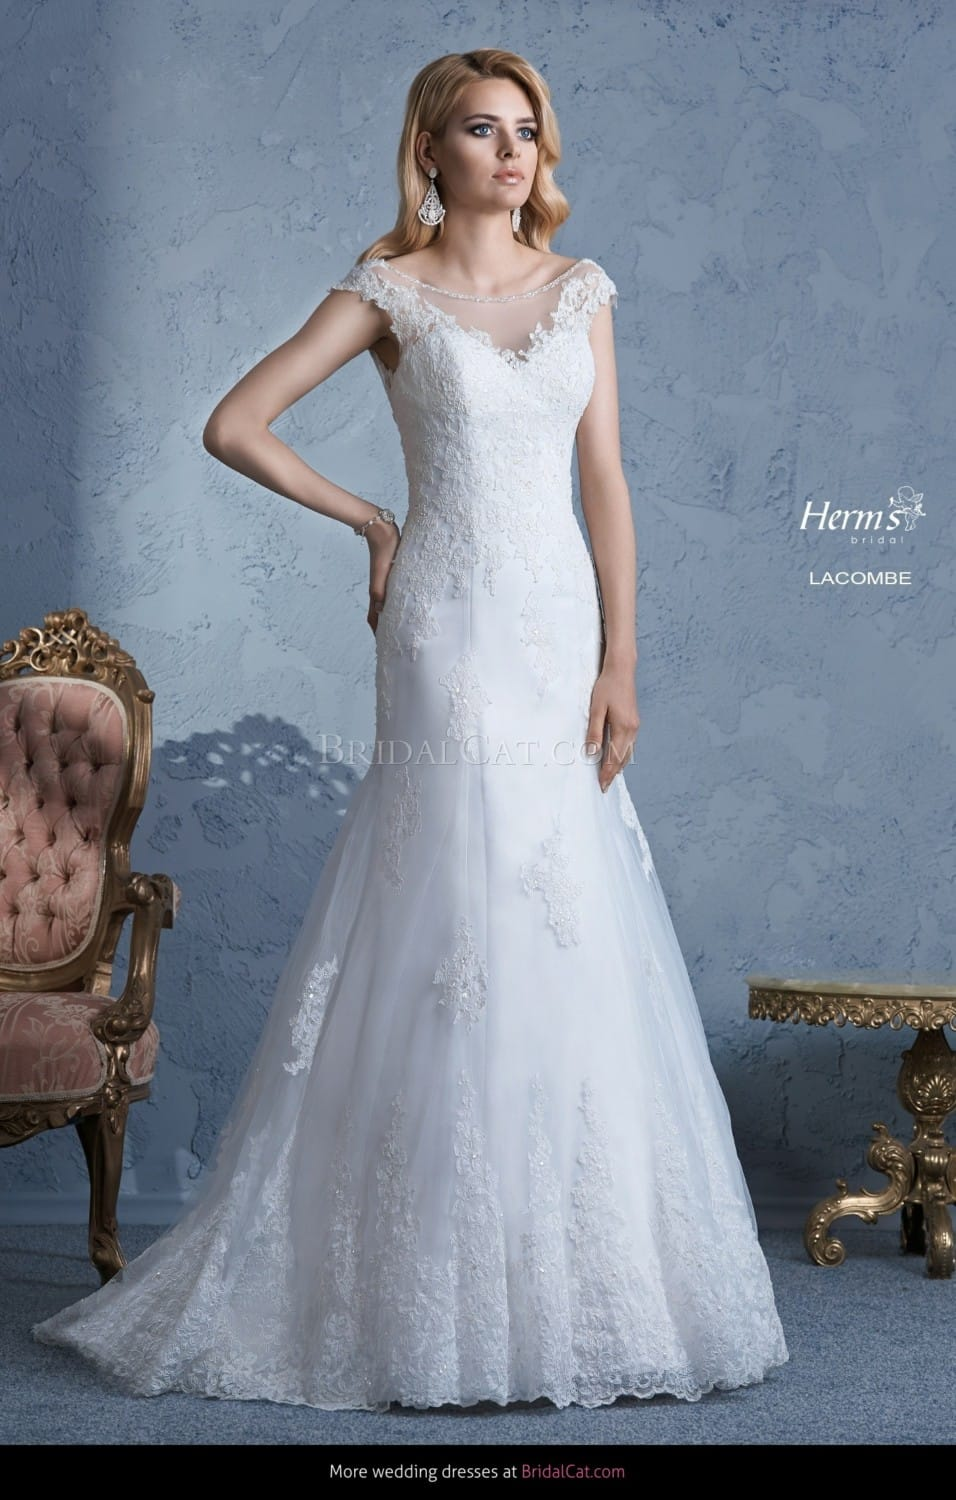 Herm 39 s bridal lacombe wedding dress sell my wedding for Sell wedding dress online